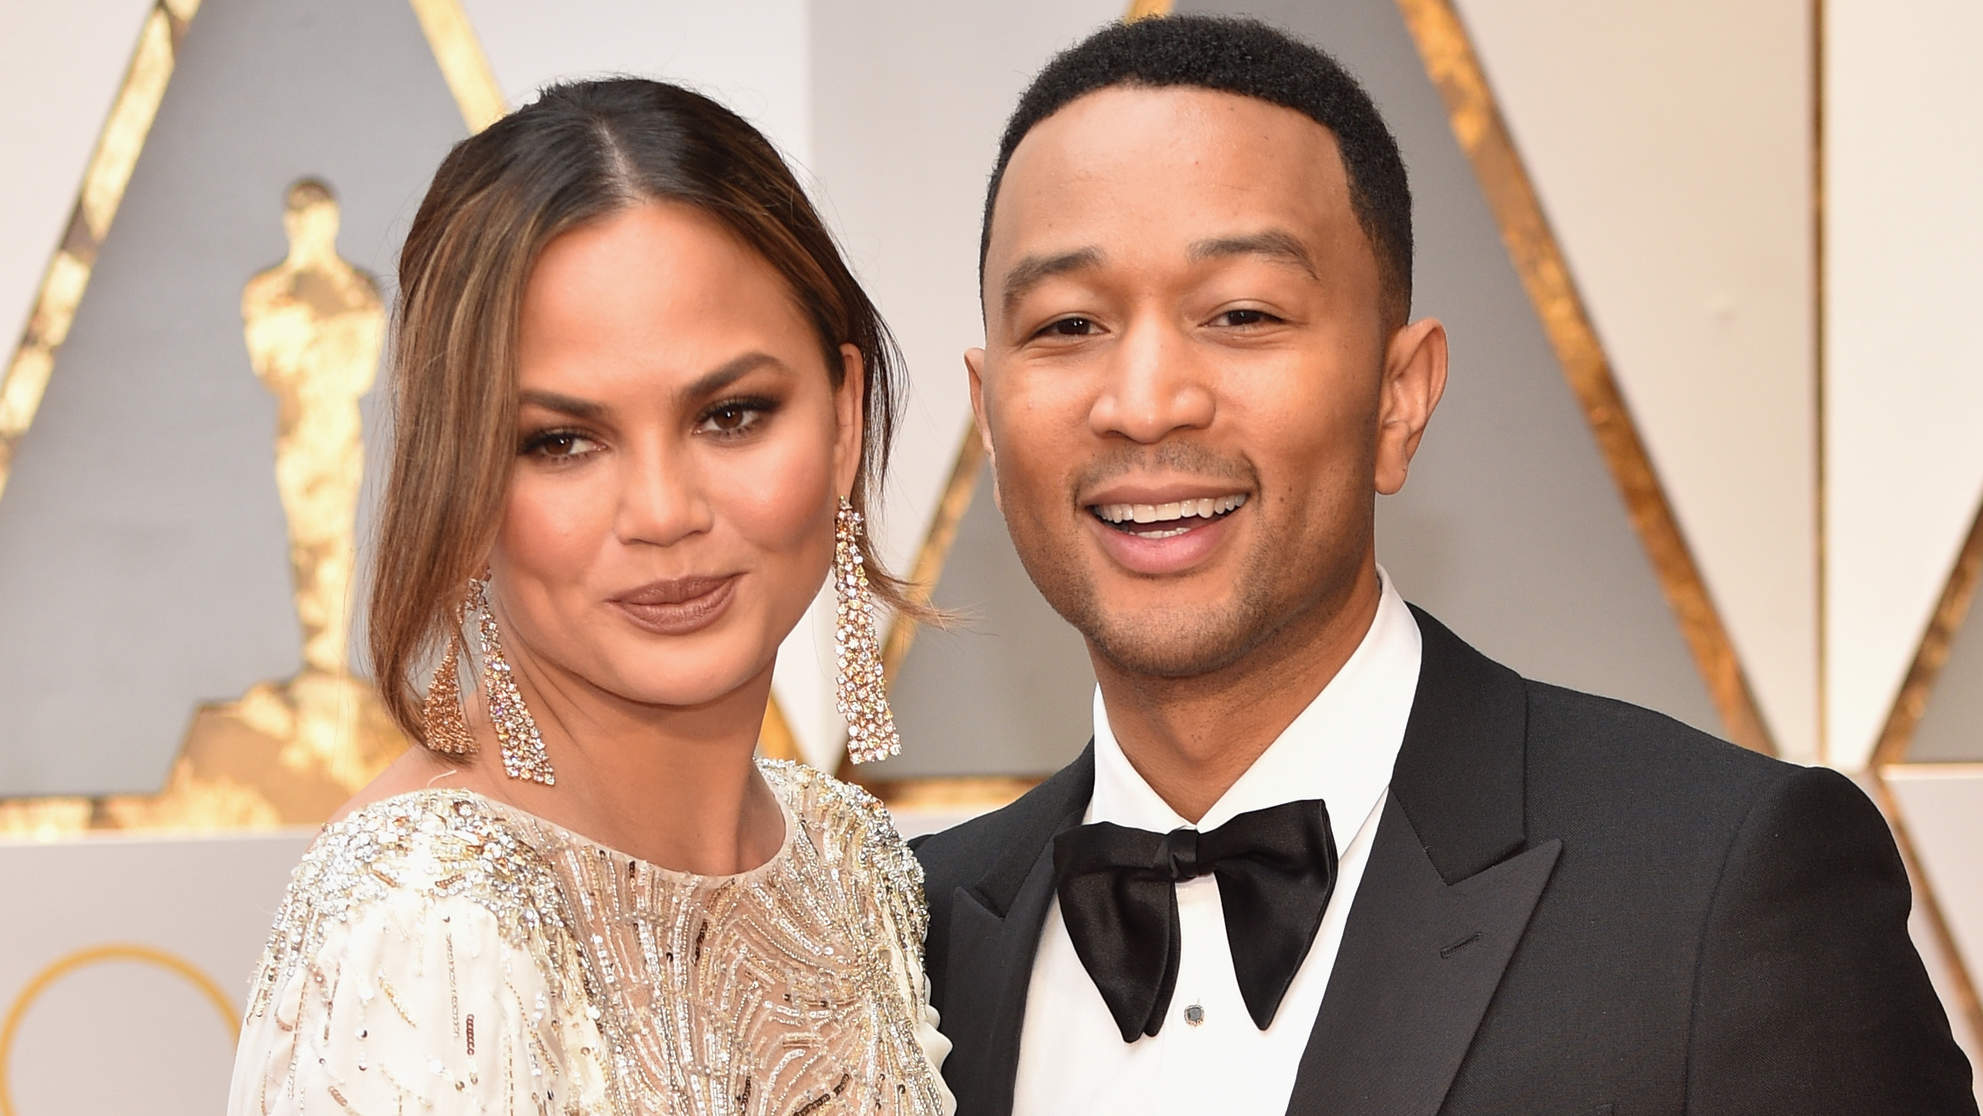 It'll Be a Boy for John Legend and Chrissy Teigen